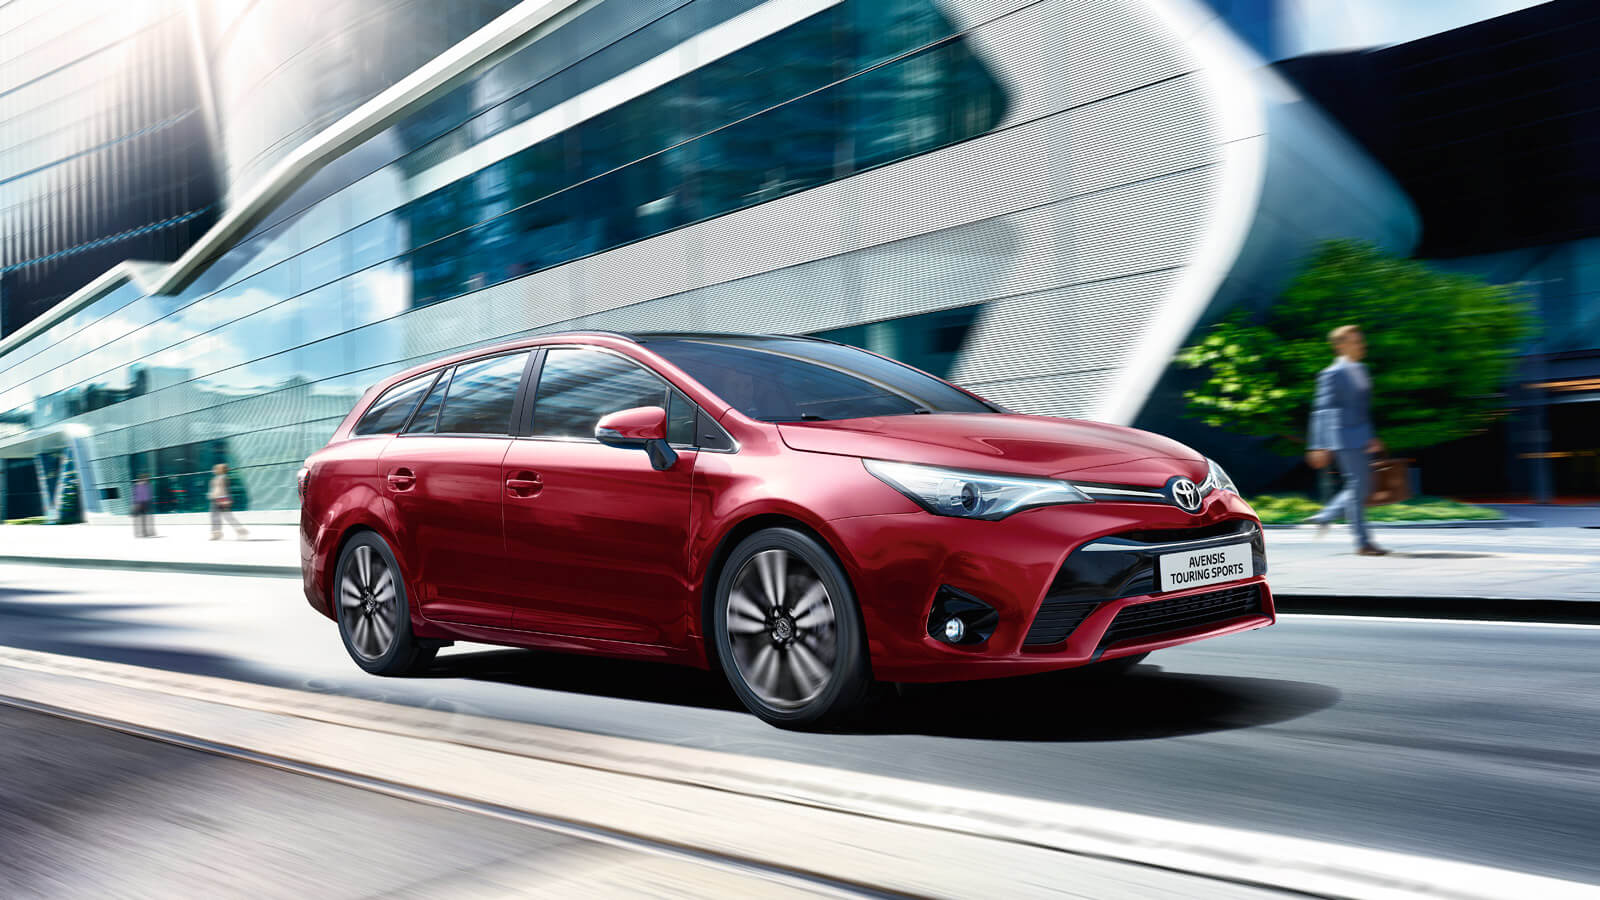 Avensis models & features